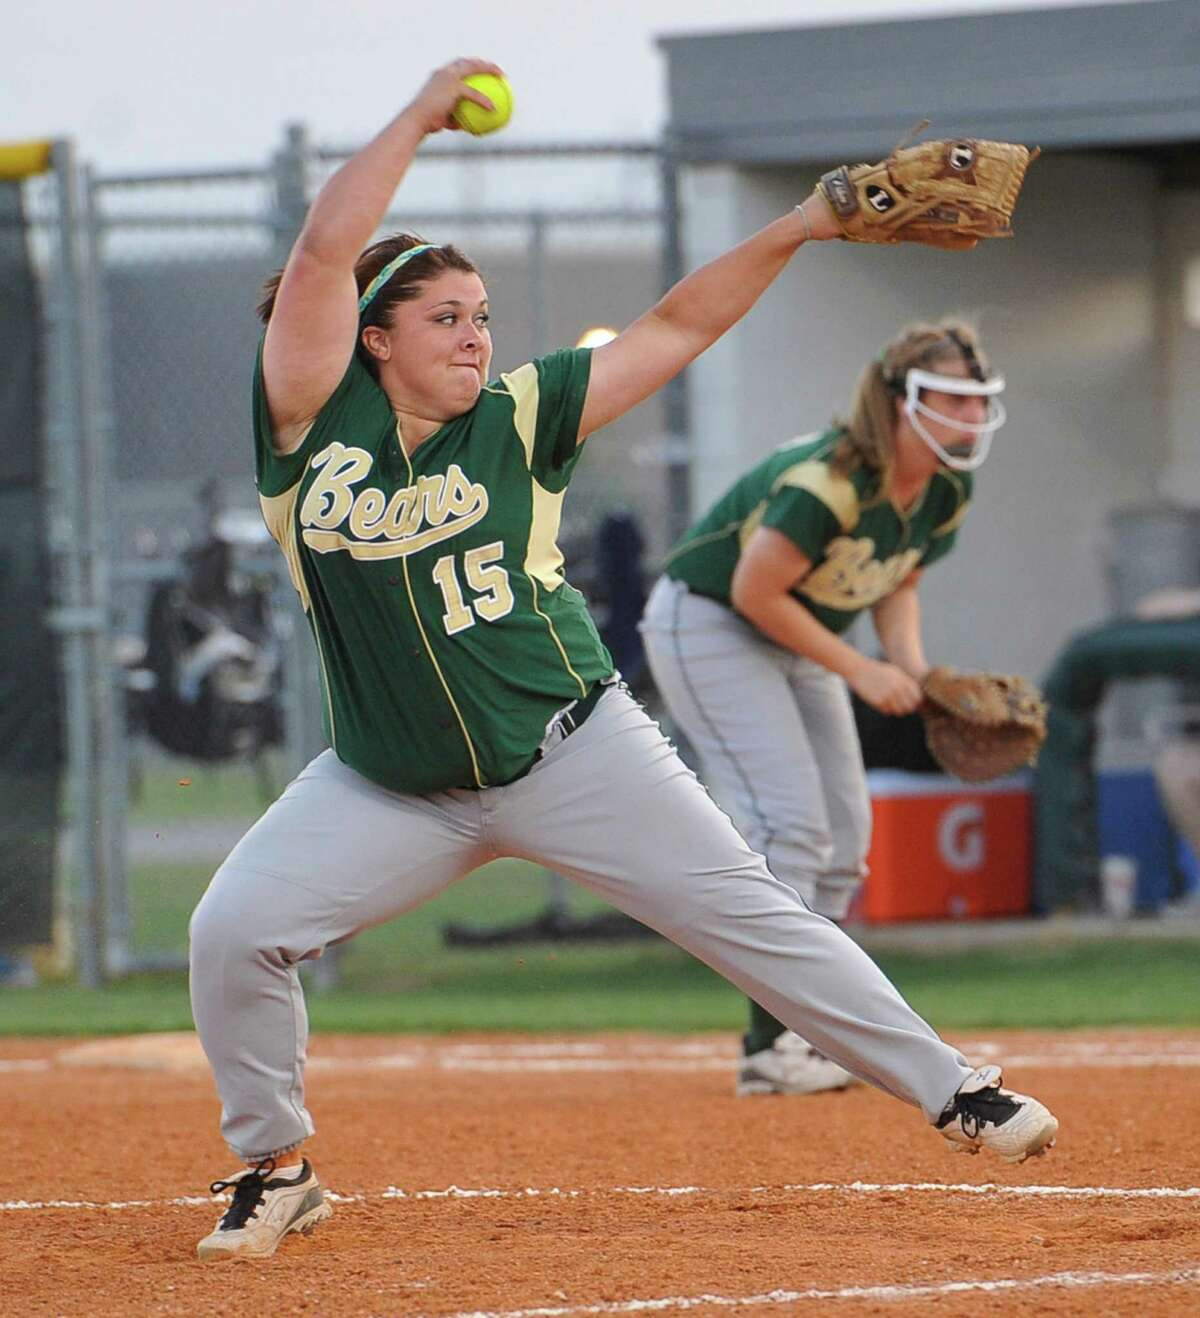 Lady Bear pitcher #15, Raven Cole winds up one of her fast balls. The Little Cypress-Mauriceville girls softball team played game one of a 3 game series against Richmond Foster Thursday night May 17, 2012 at Goose Creek Memorial High School in Baytown Texas. Dave Ryan/The Enterprise